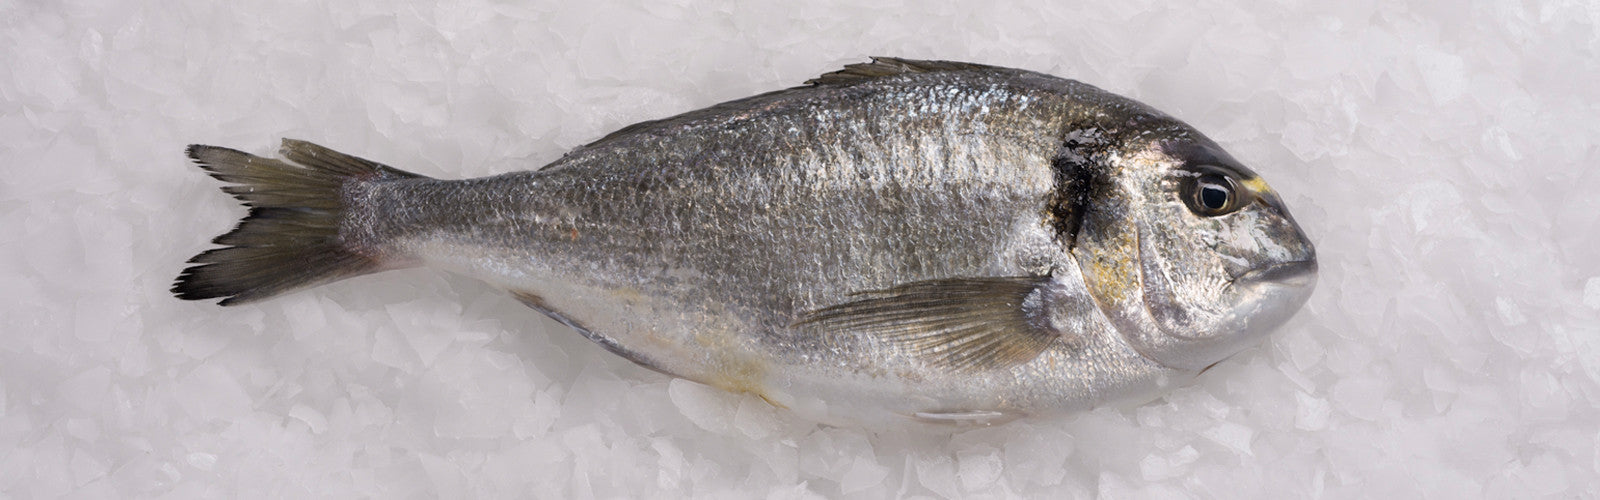 pierless fish - Picture Of Fish